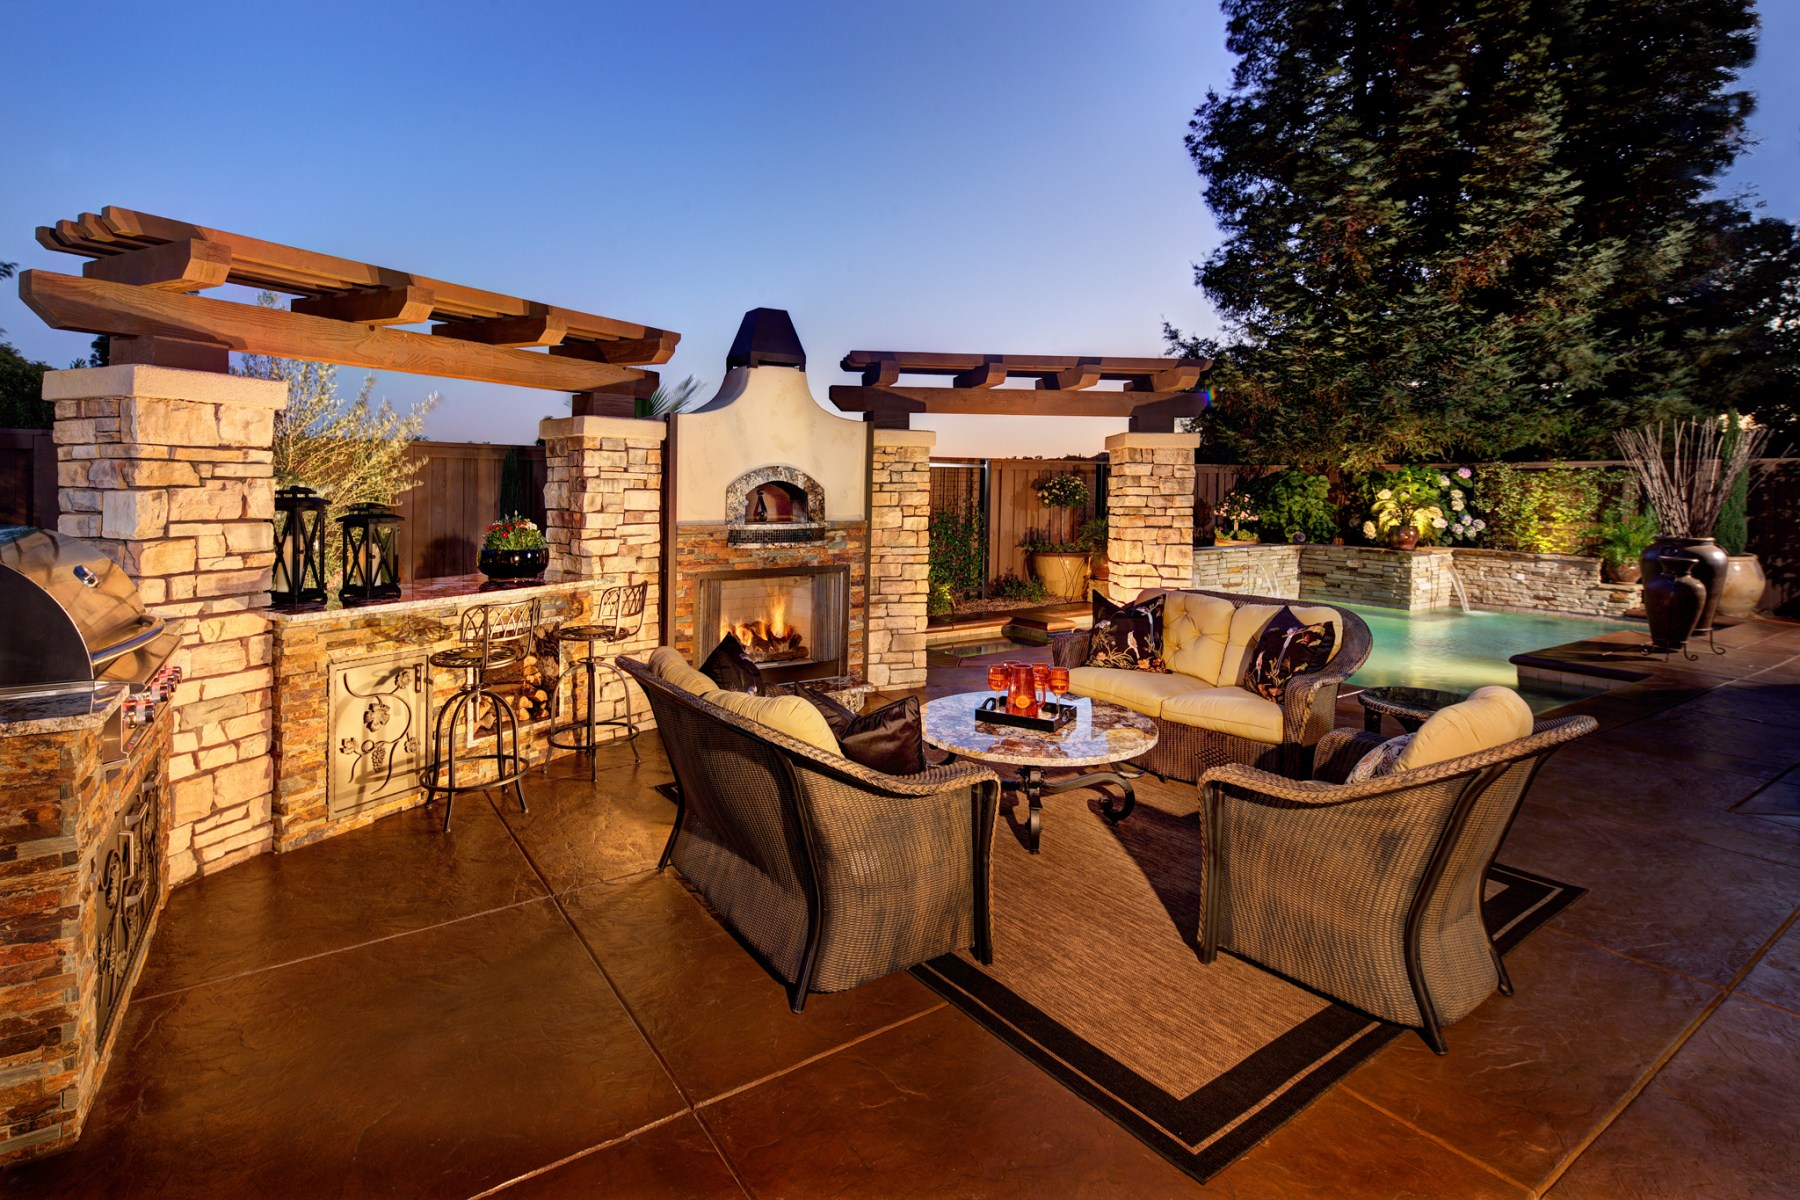 photo of Backyard remodel by Gucci Interior Design